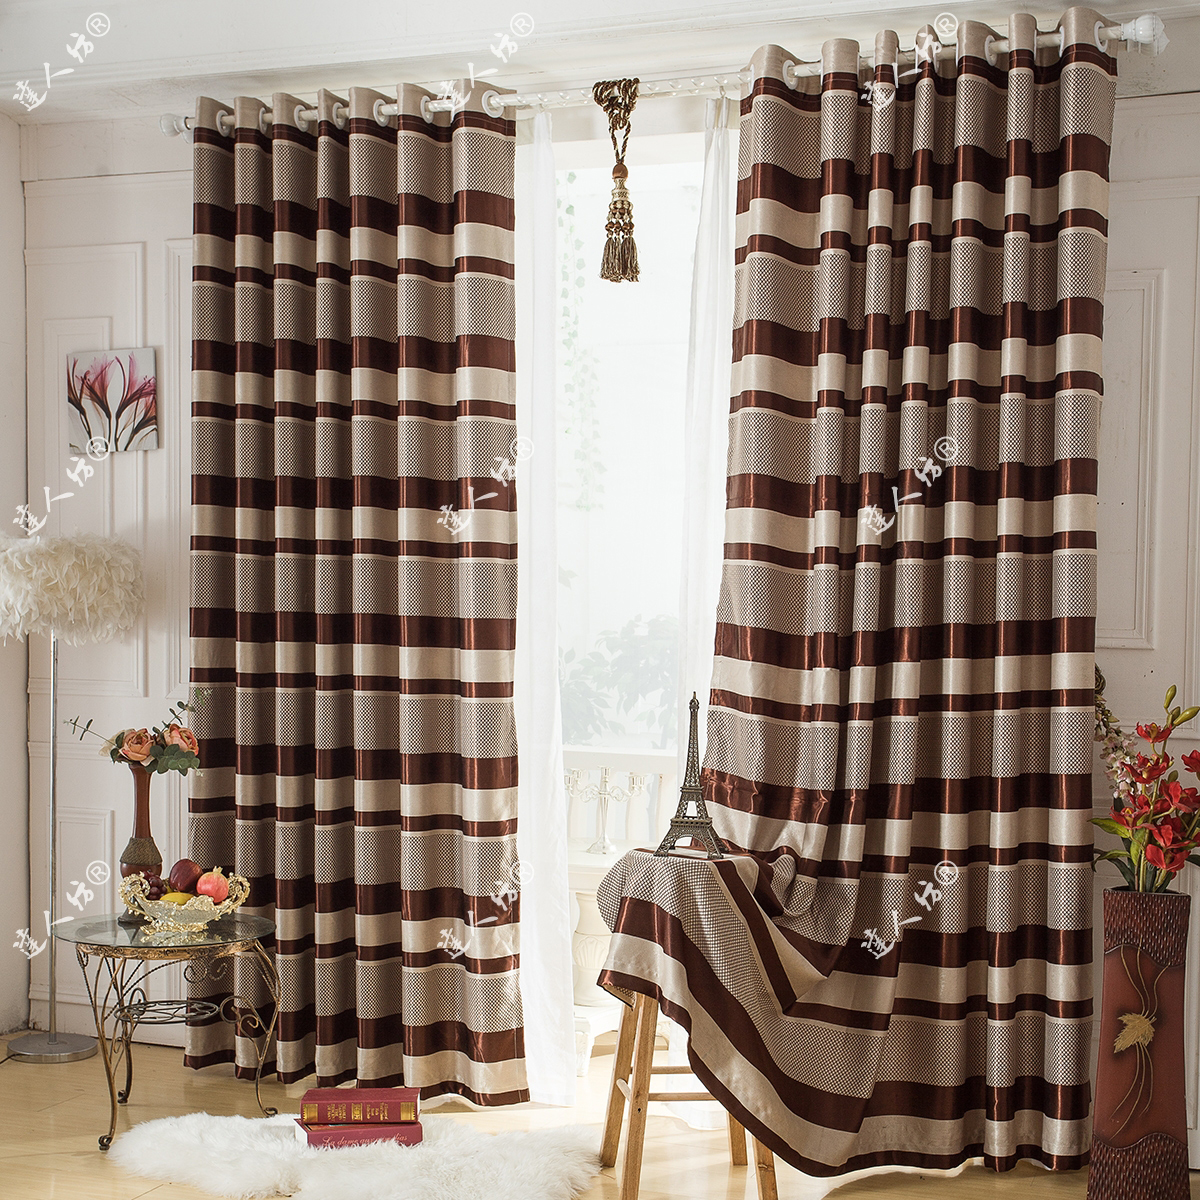 Attractive striped curtains with long curtain and nightlamps also single sofa combined with fluufy rug and lowes mini table